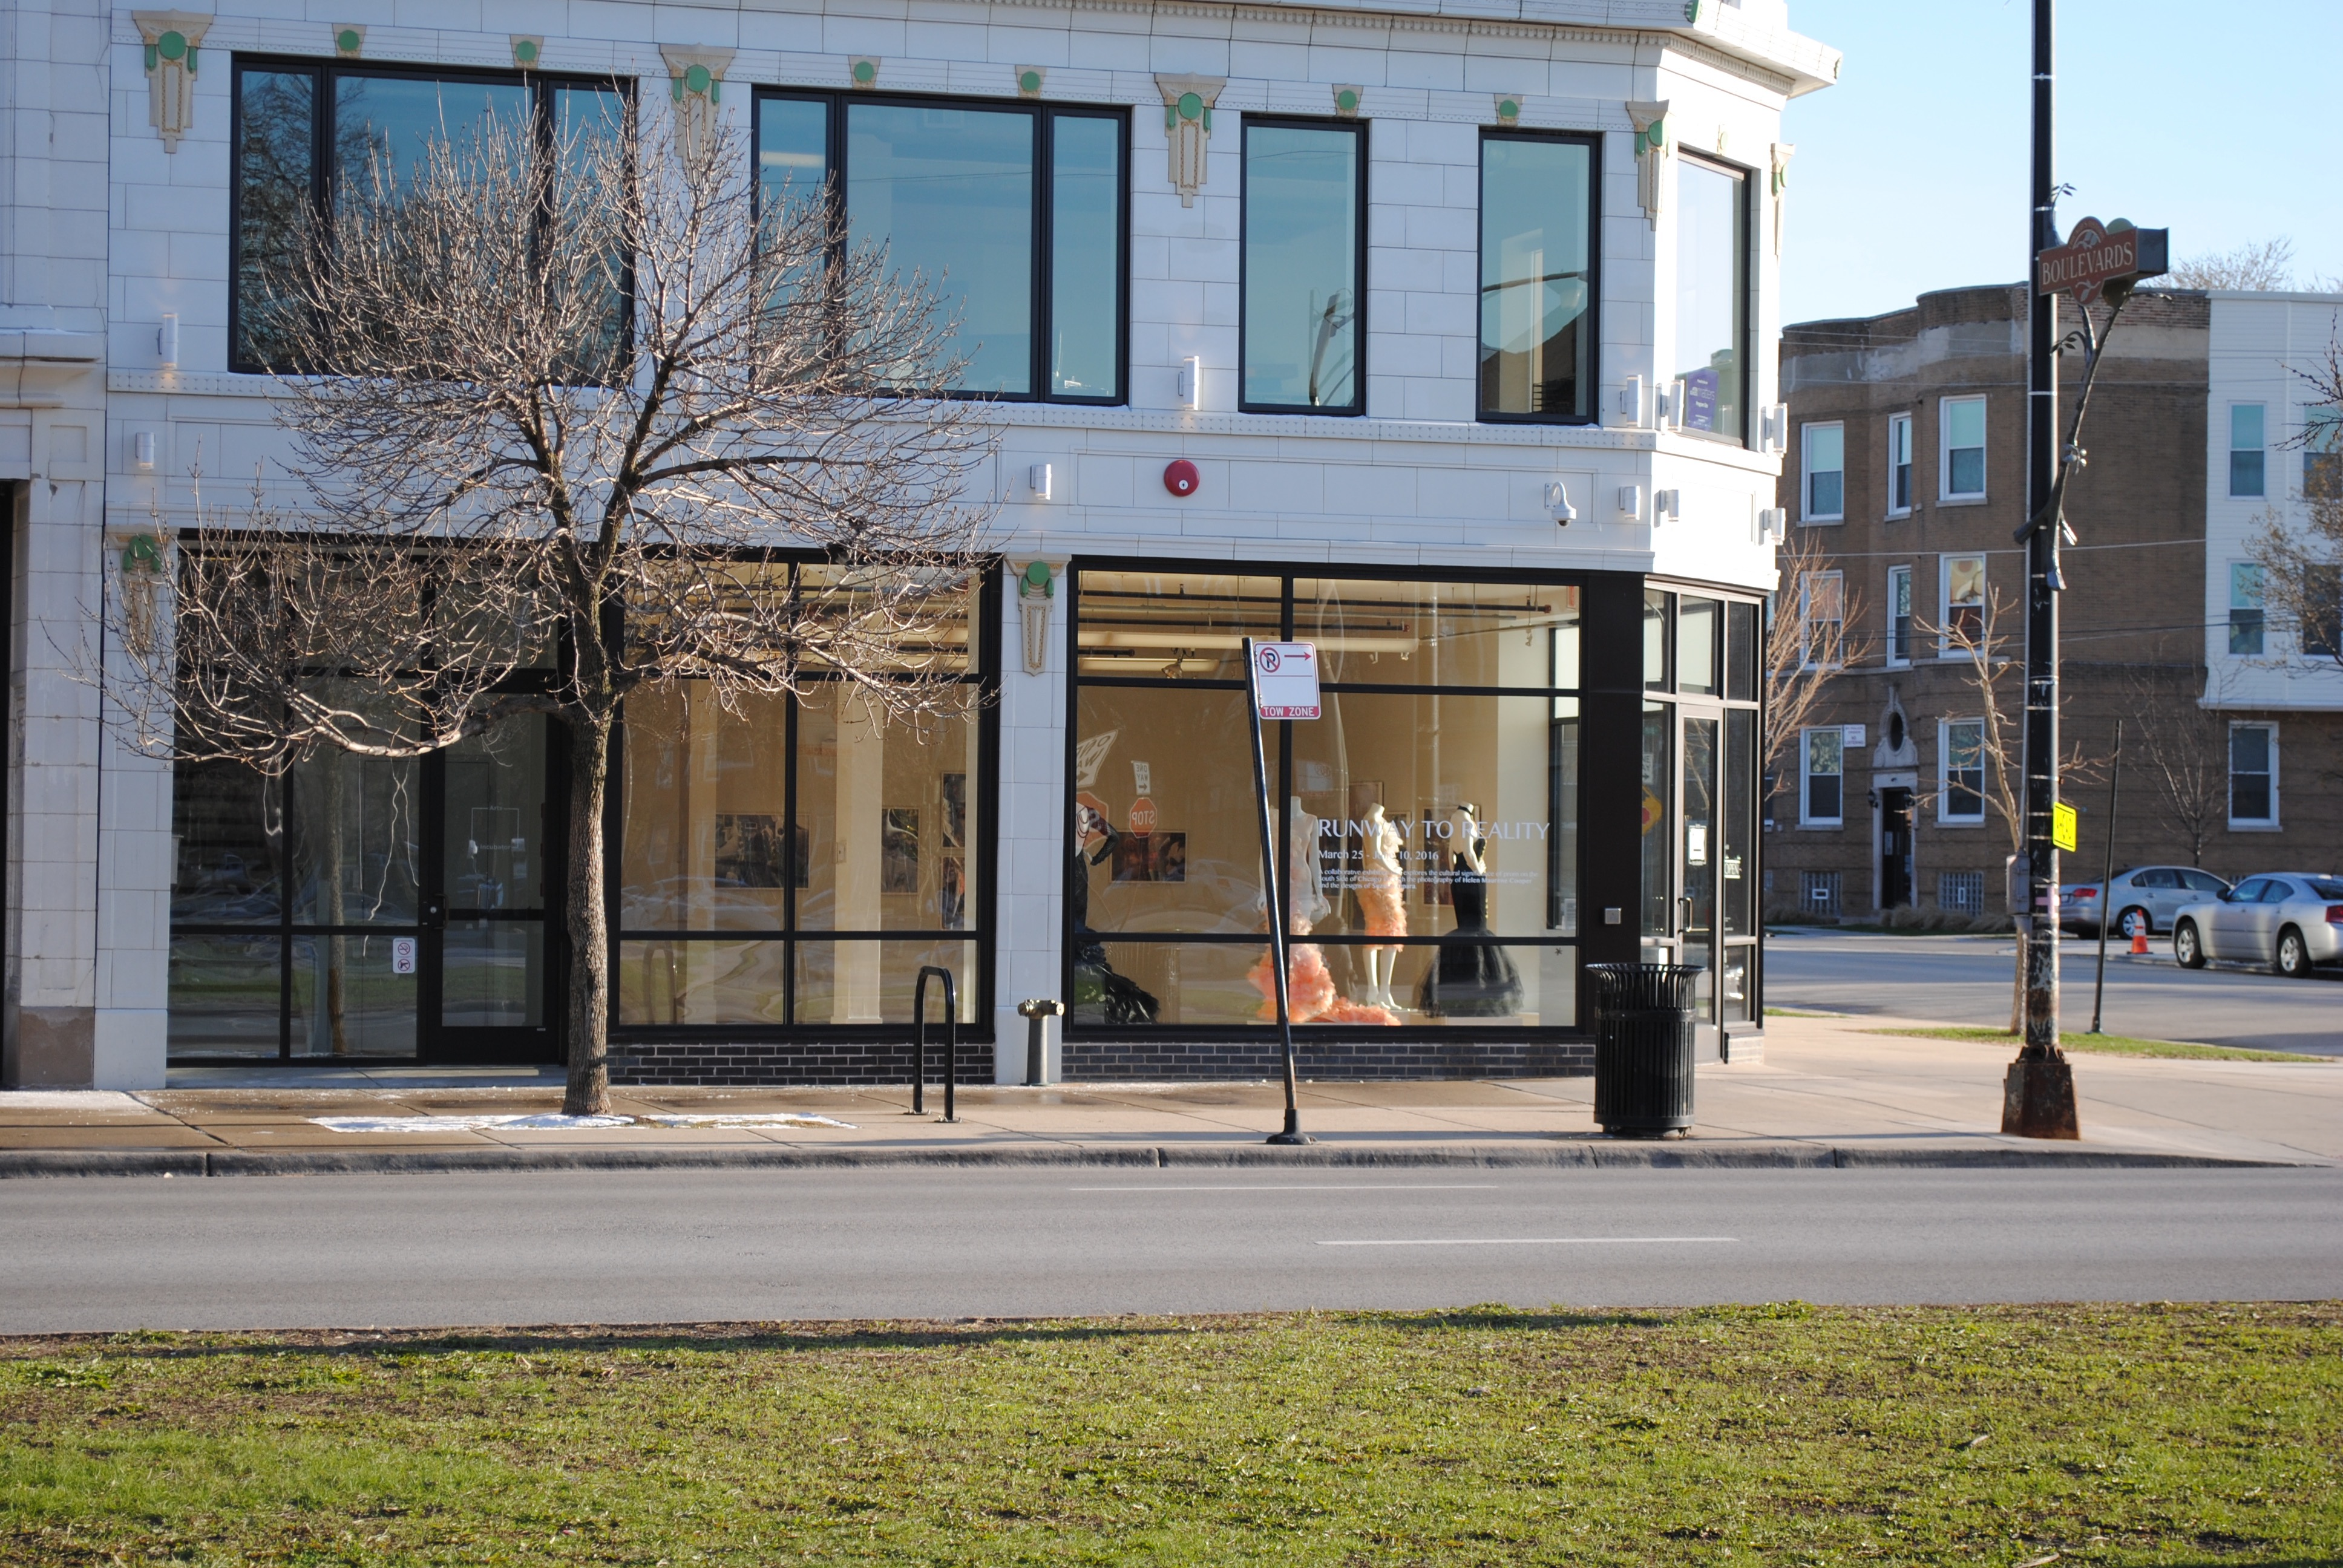 Pictured on a street corner is the Arts Incubator, which is one of the participating businesses in the GHNA program. Arts Incubator, Chicago, Illinois